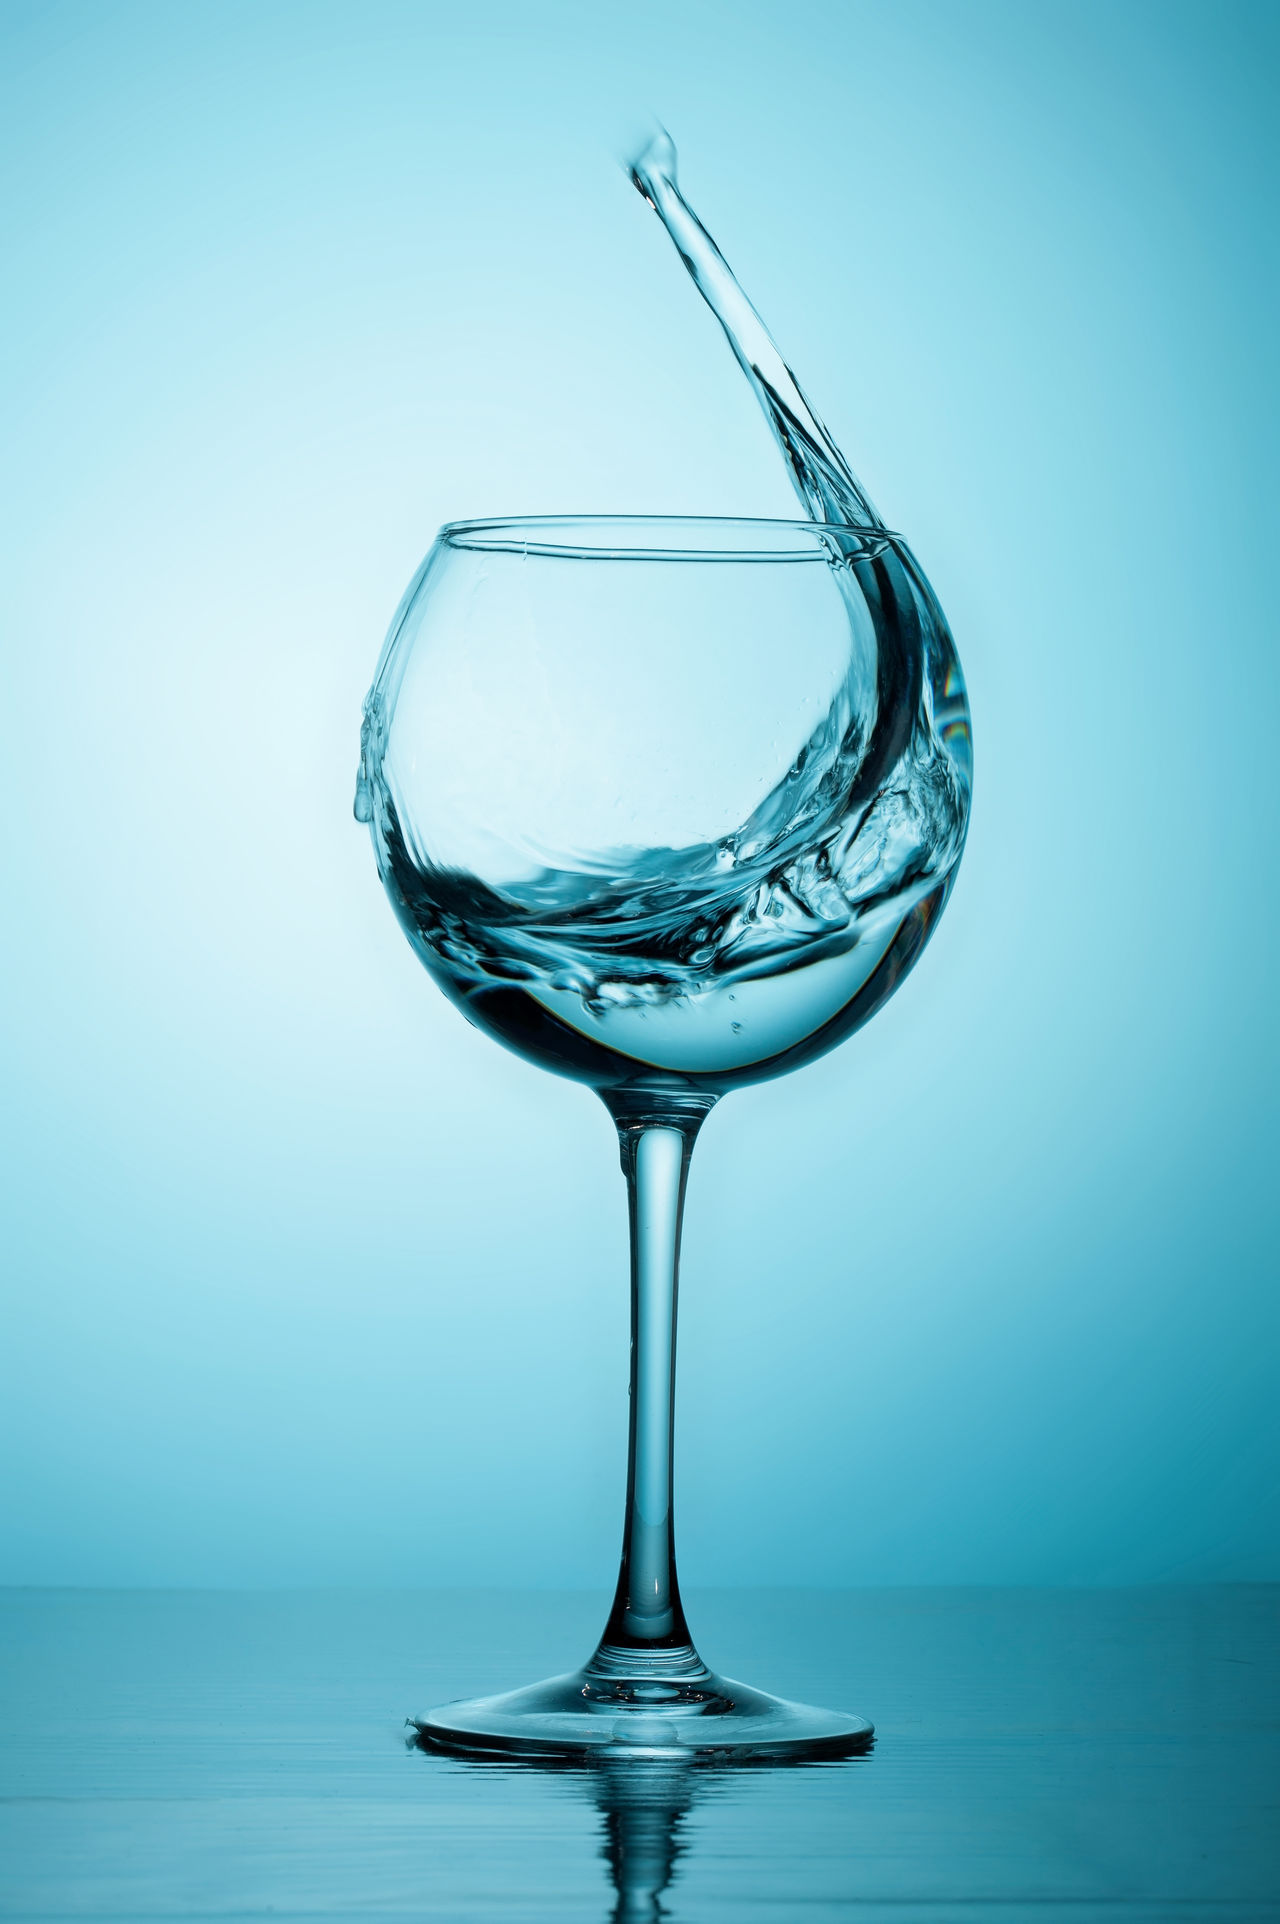 Water splash Alcohol Blue Blue Sky Clear Blue Sky Clear Water Day Drink Drinking Glass Fragility Freshness Motion No People Reflection Science Splashing Studio Shot Water Wineglass